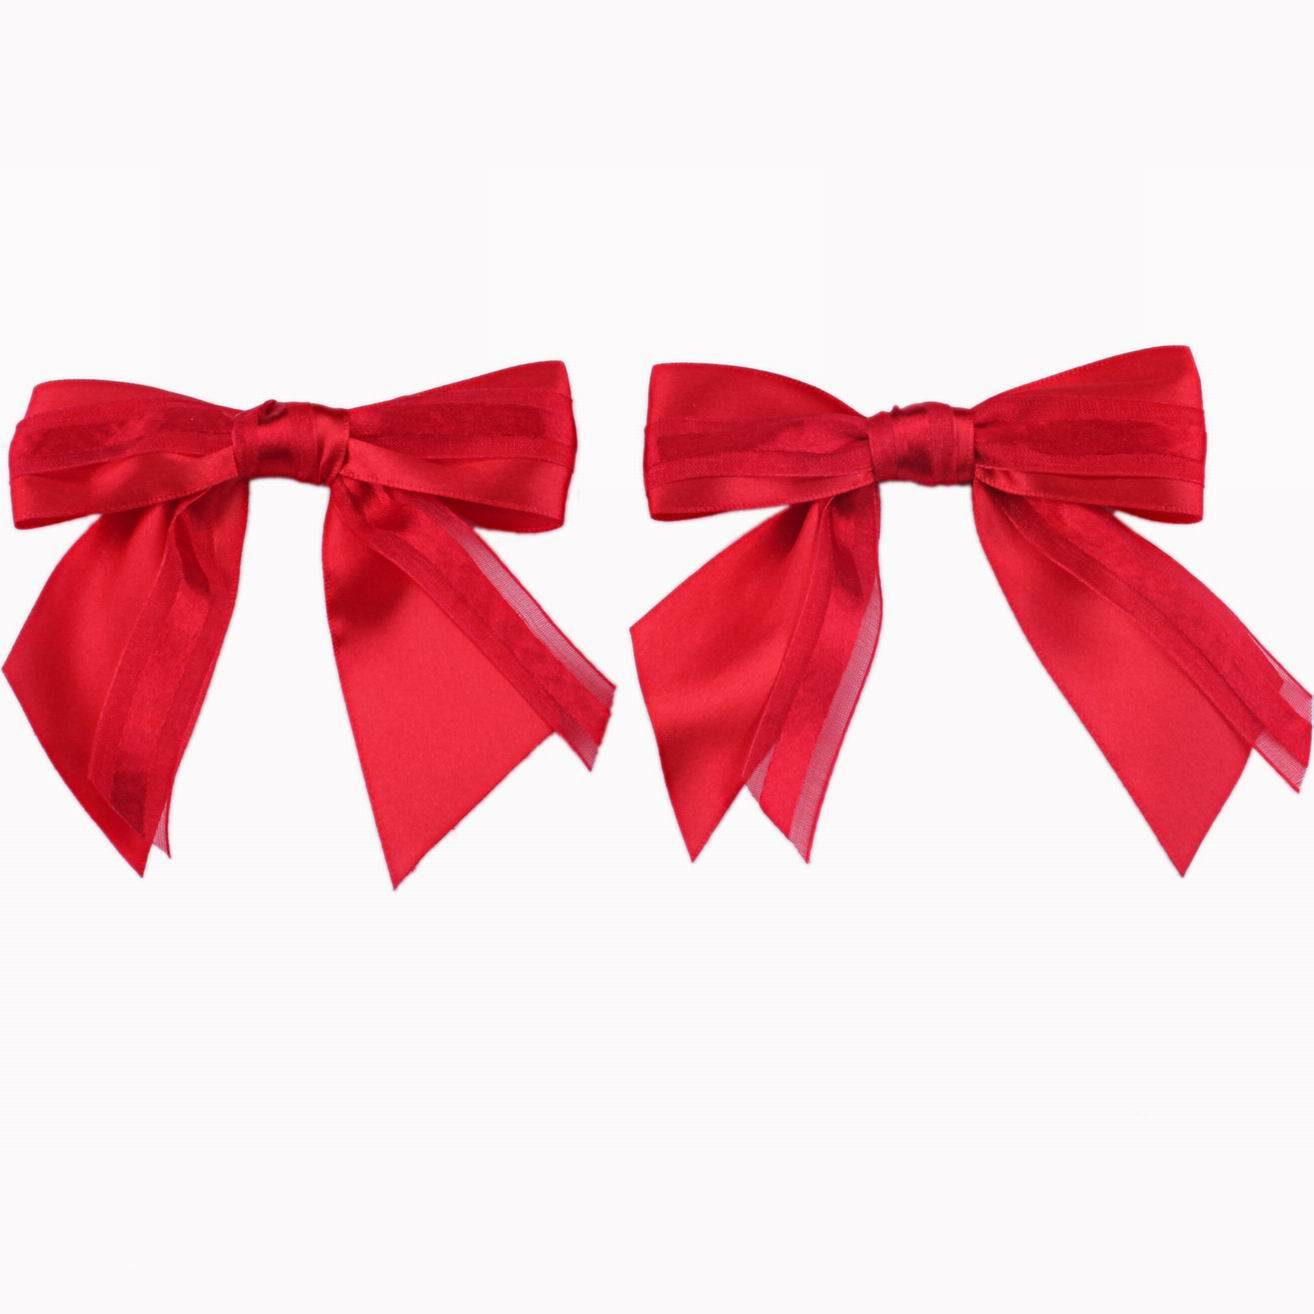 Queensnakecom red bows 2